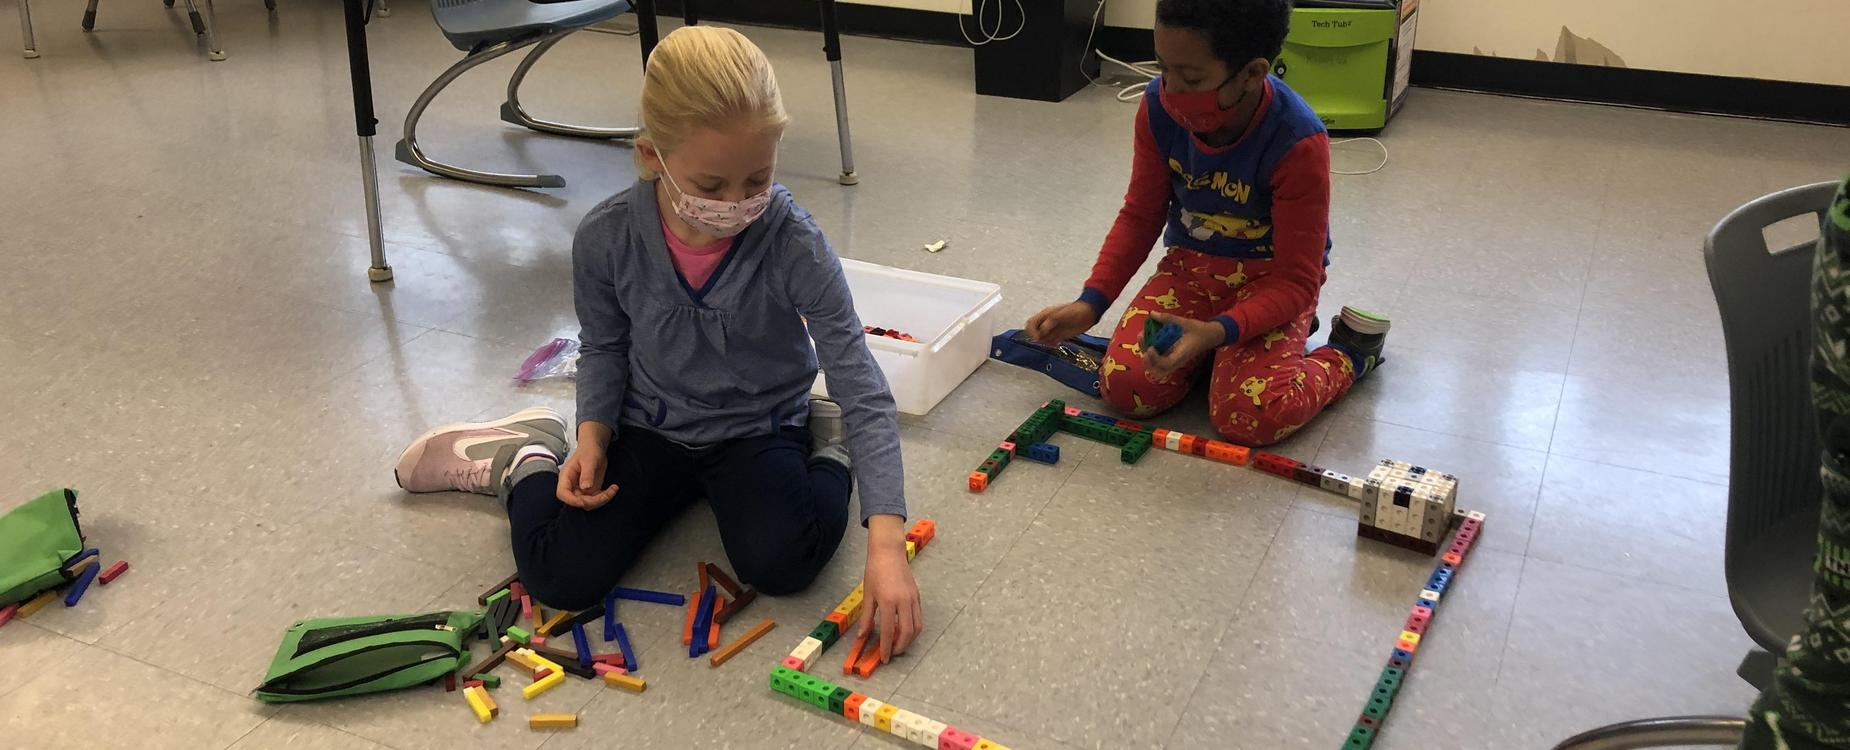 2 students are in the process of building their community using various wooden and plastic blocks.